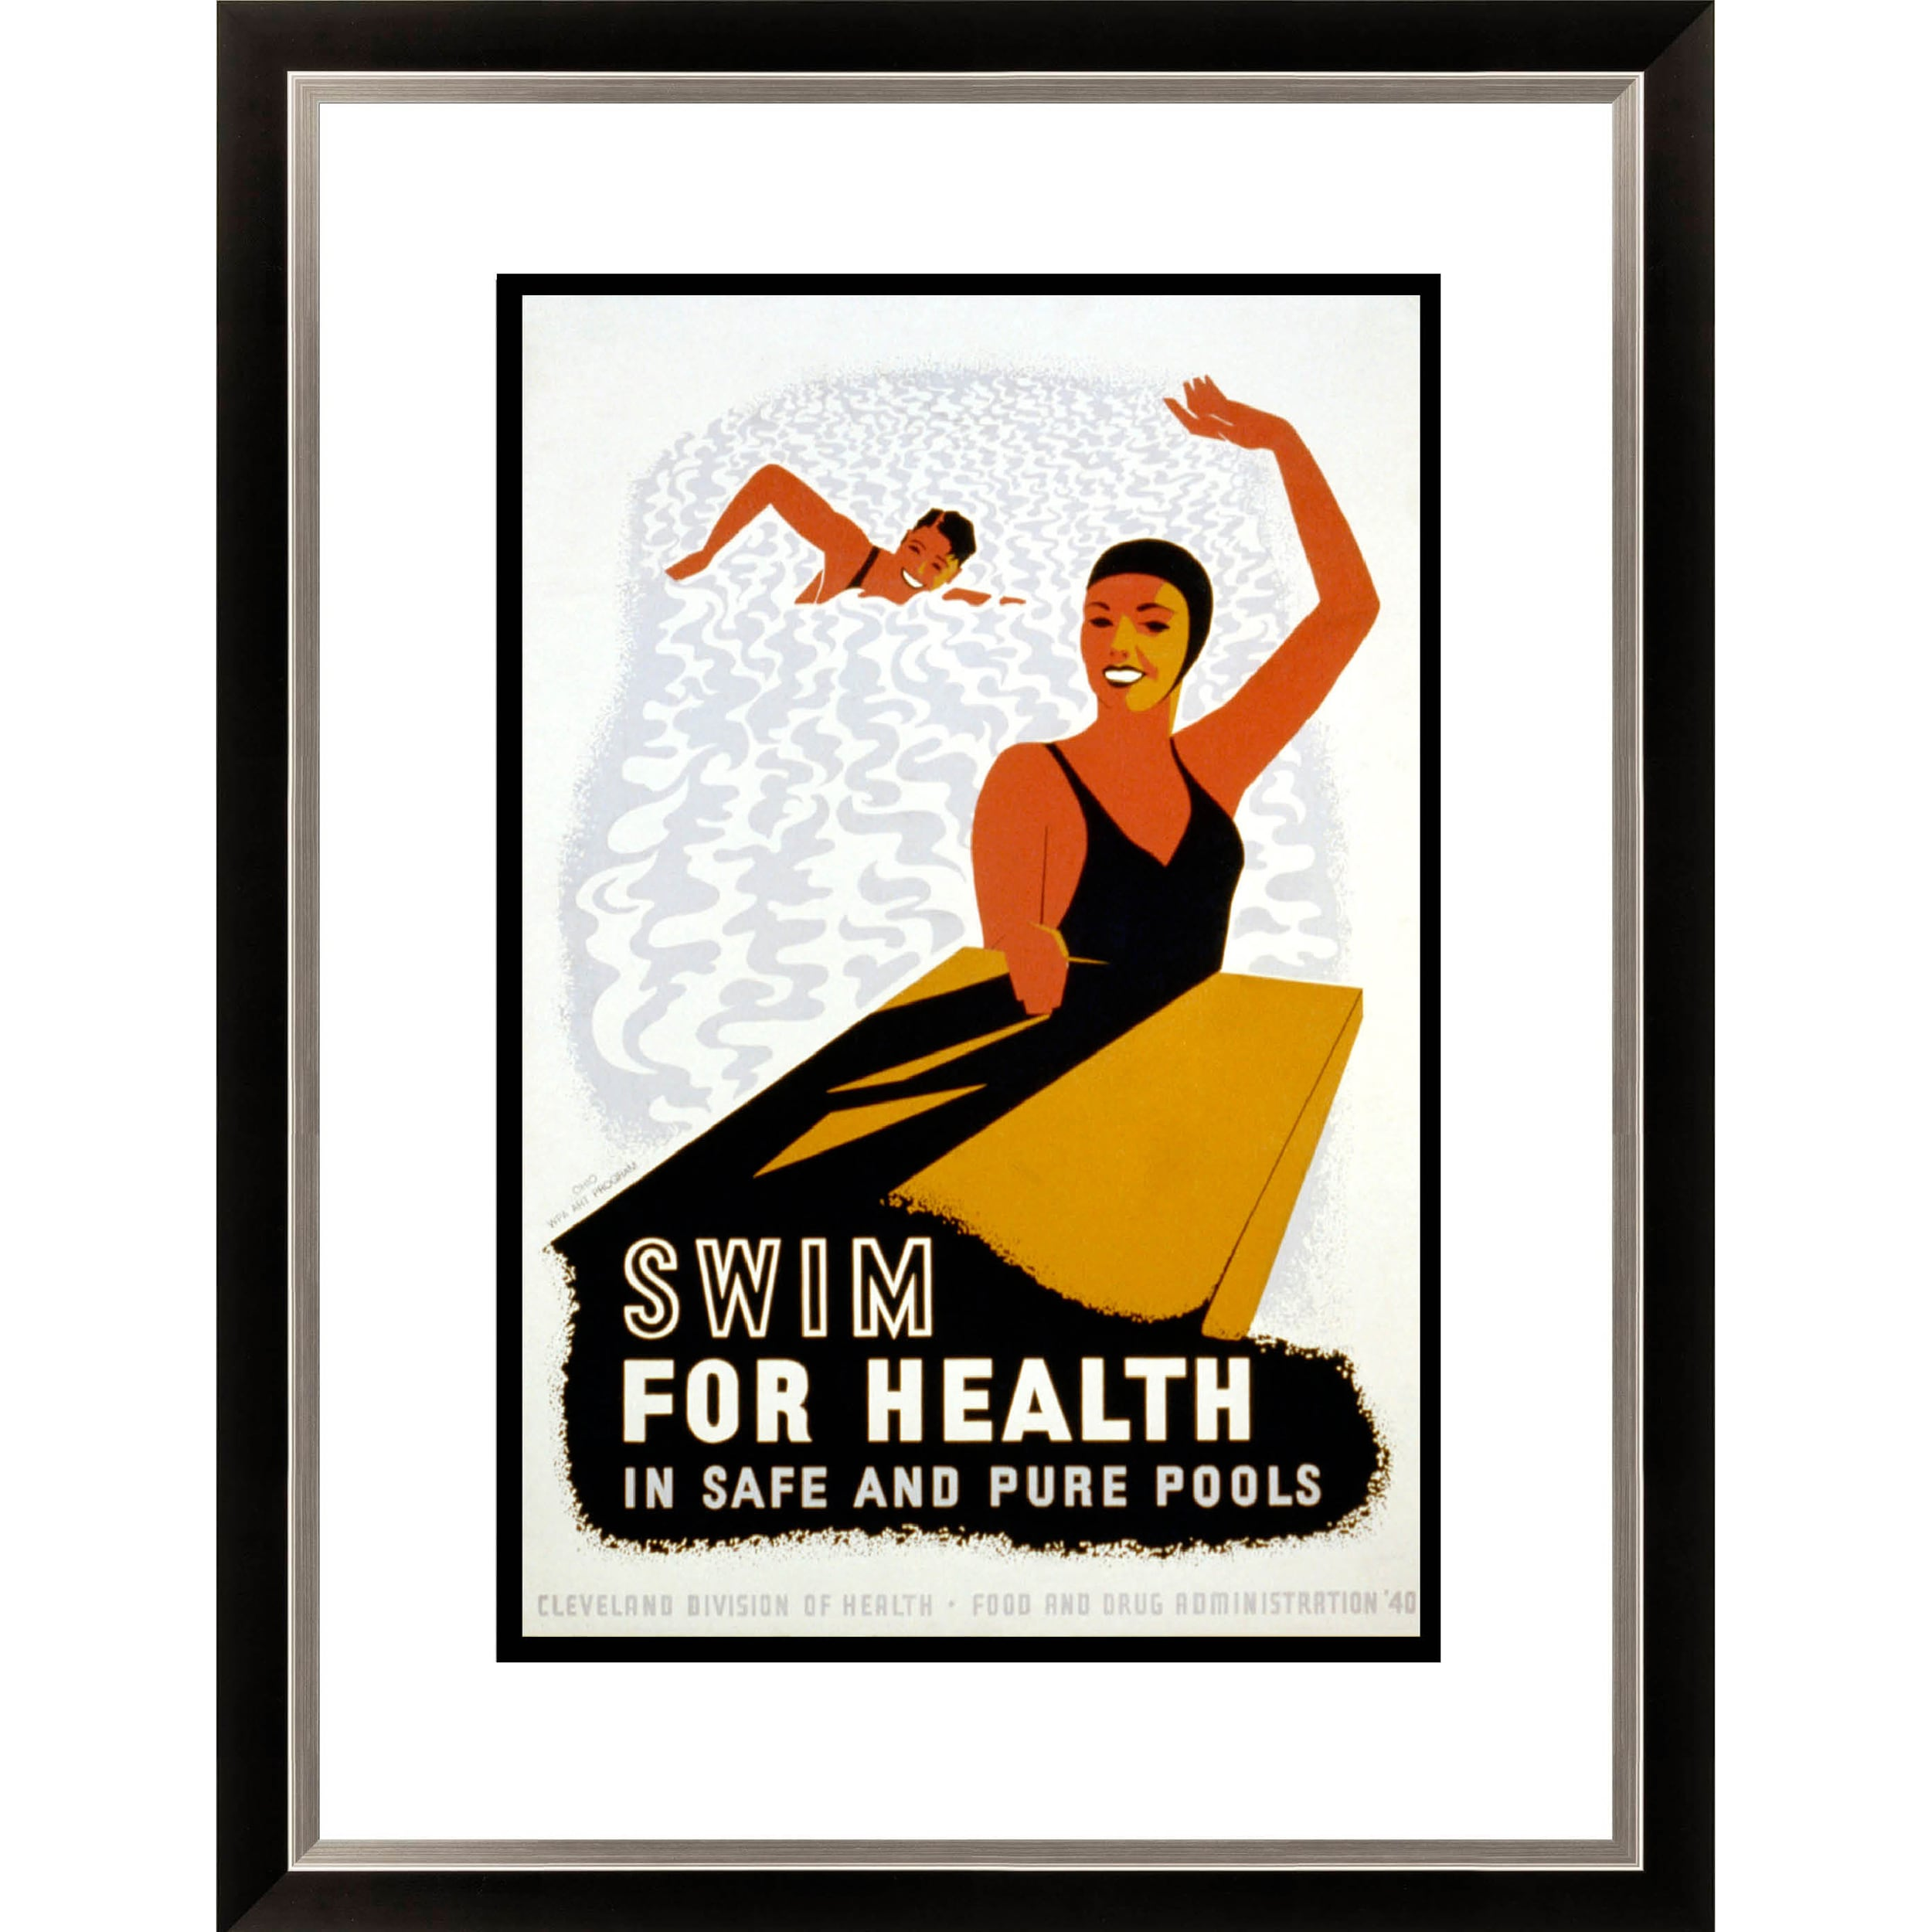 Gallery Direct 'Swim for Health in Safe and Pure Pools' Framed Limited Edition Giclee